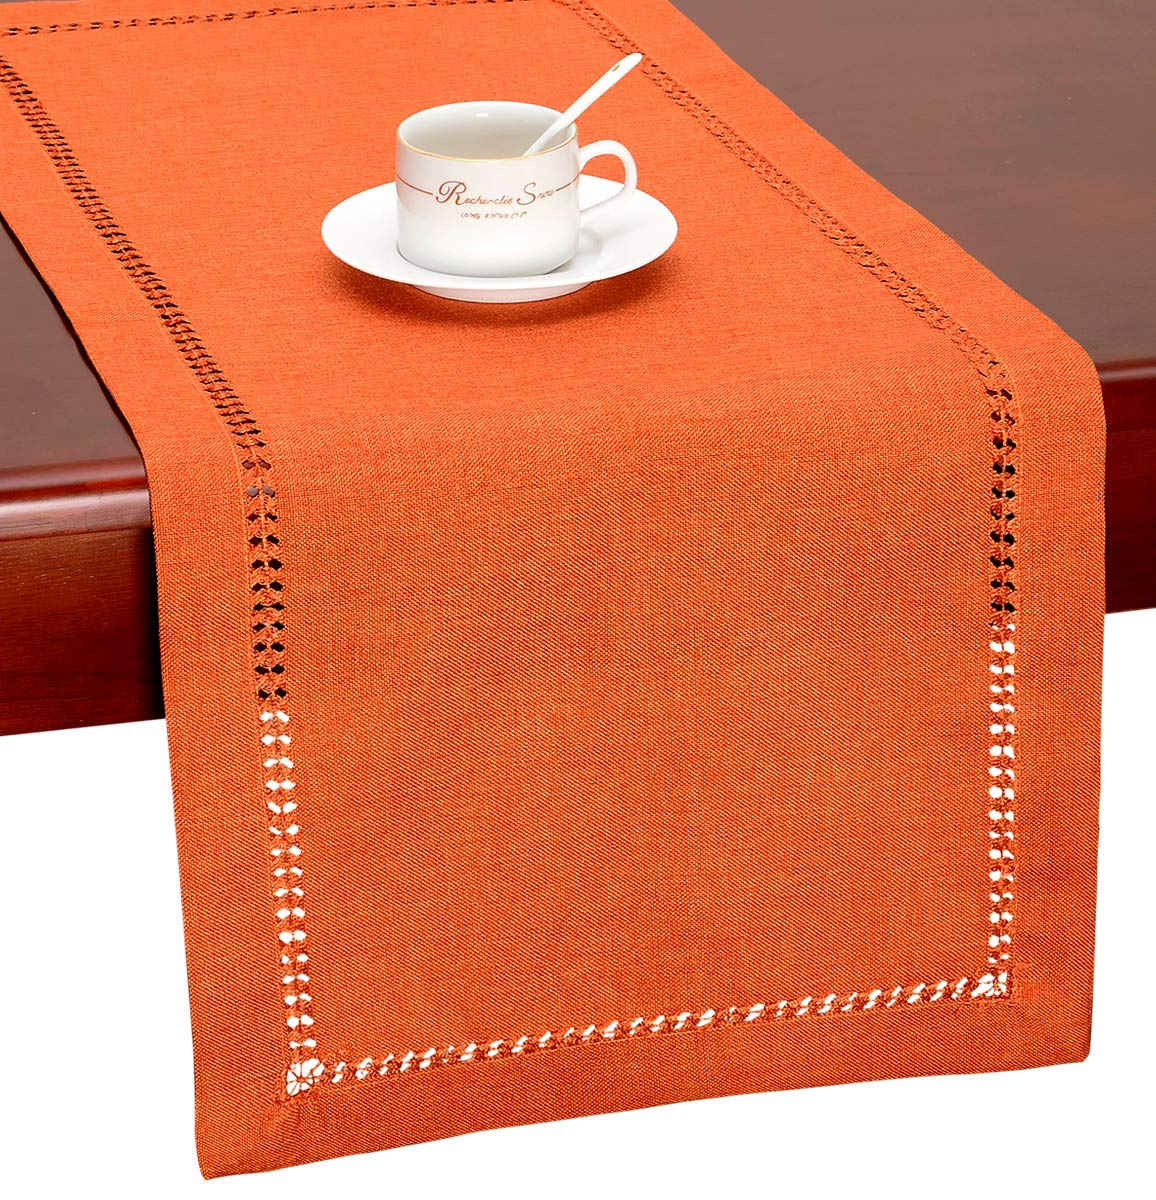 GRELUCGO Handmade Hemstitch Orange Thanksgiving Table Runner Or Dresser Scarf (14 x 60 Inch)